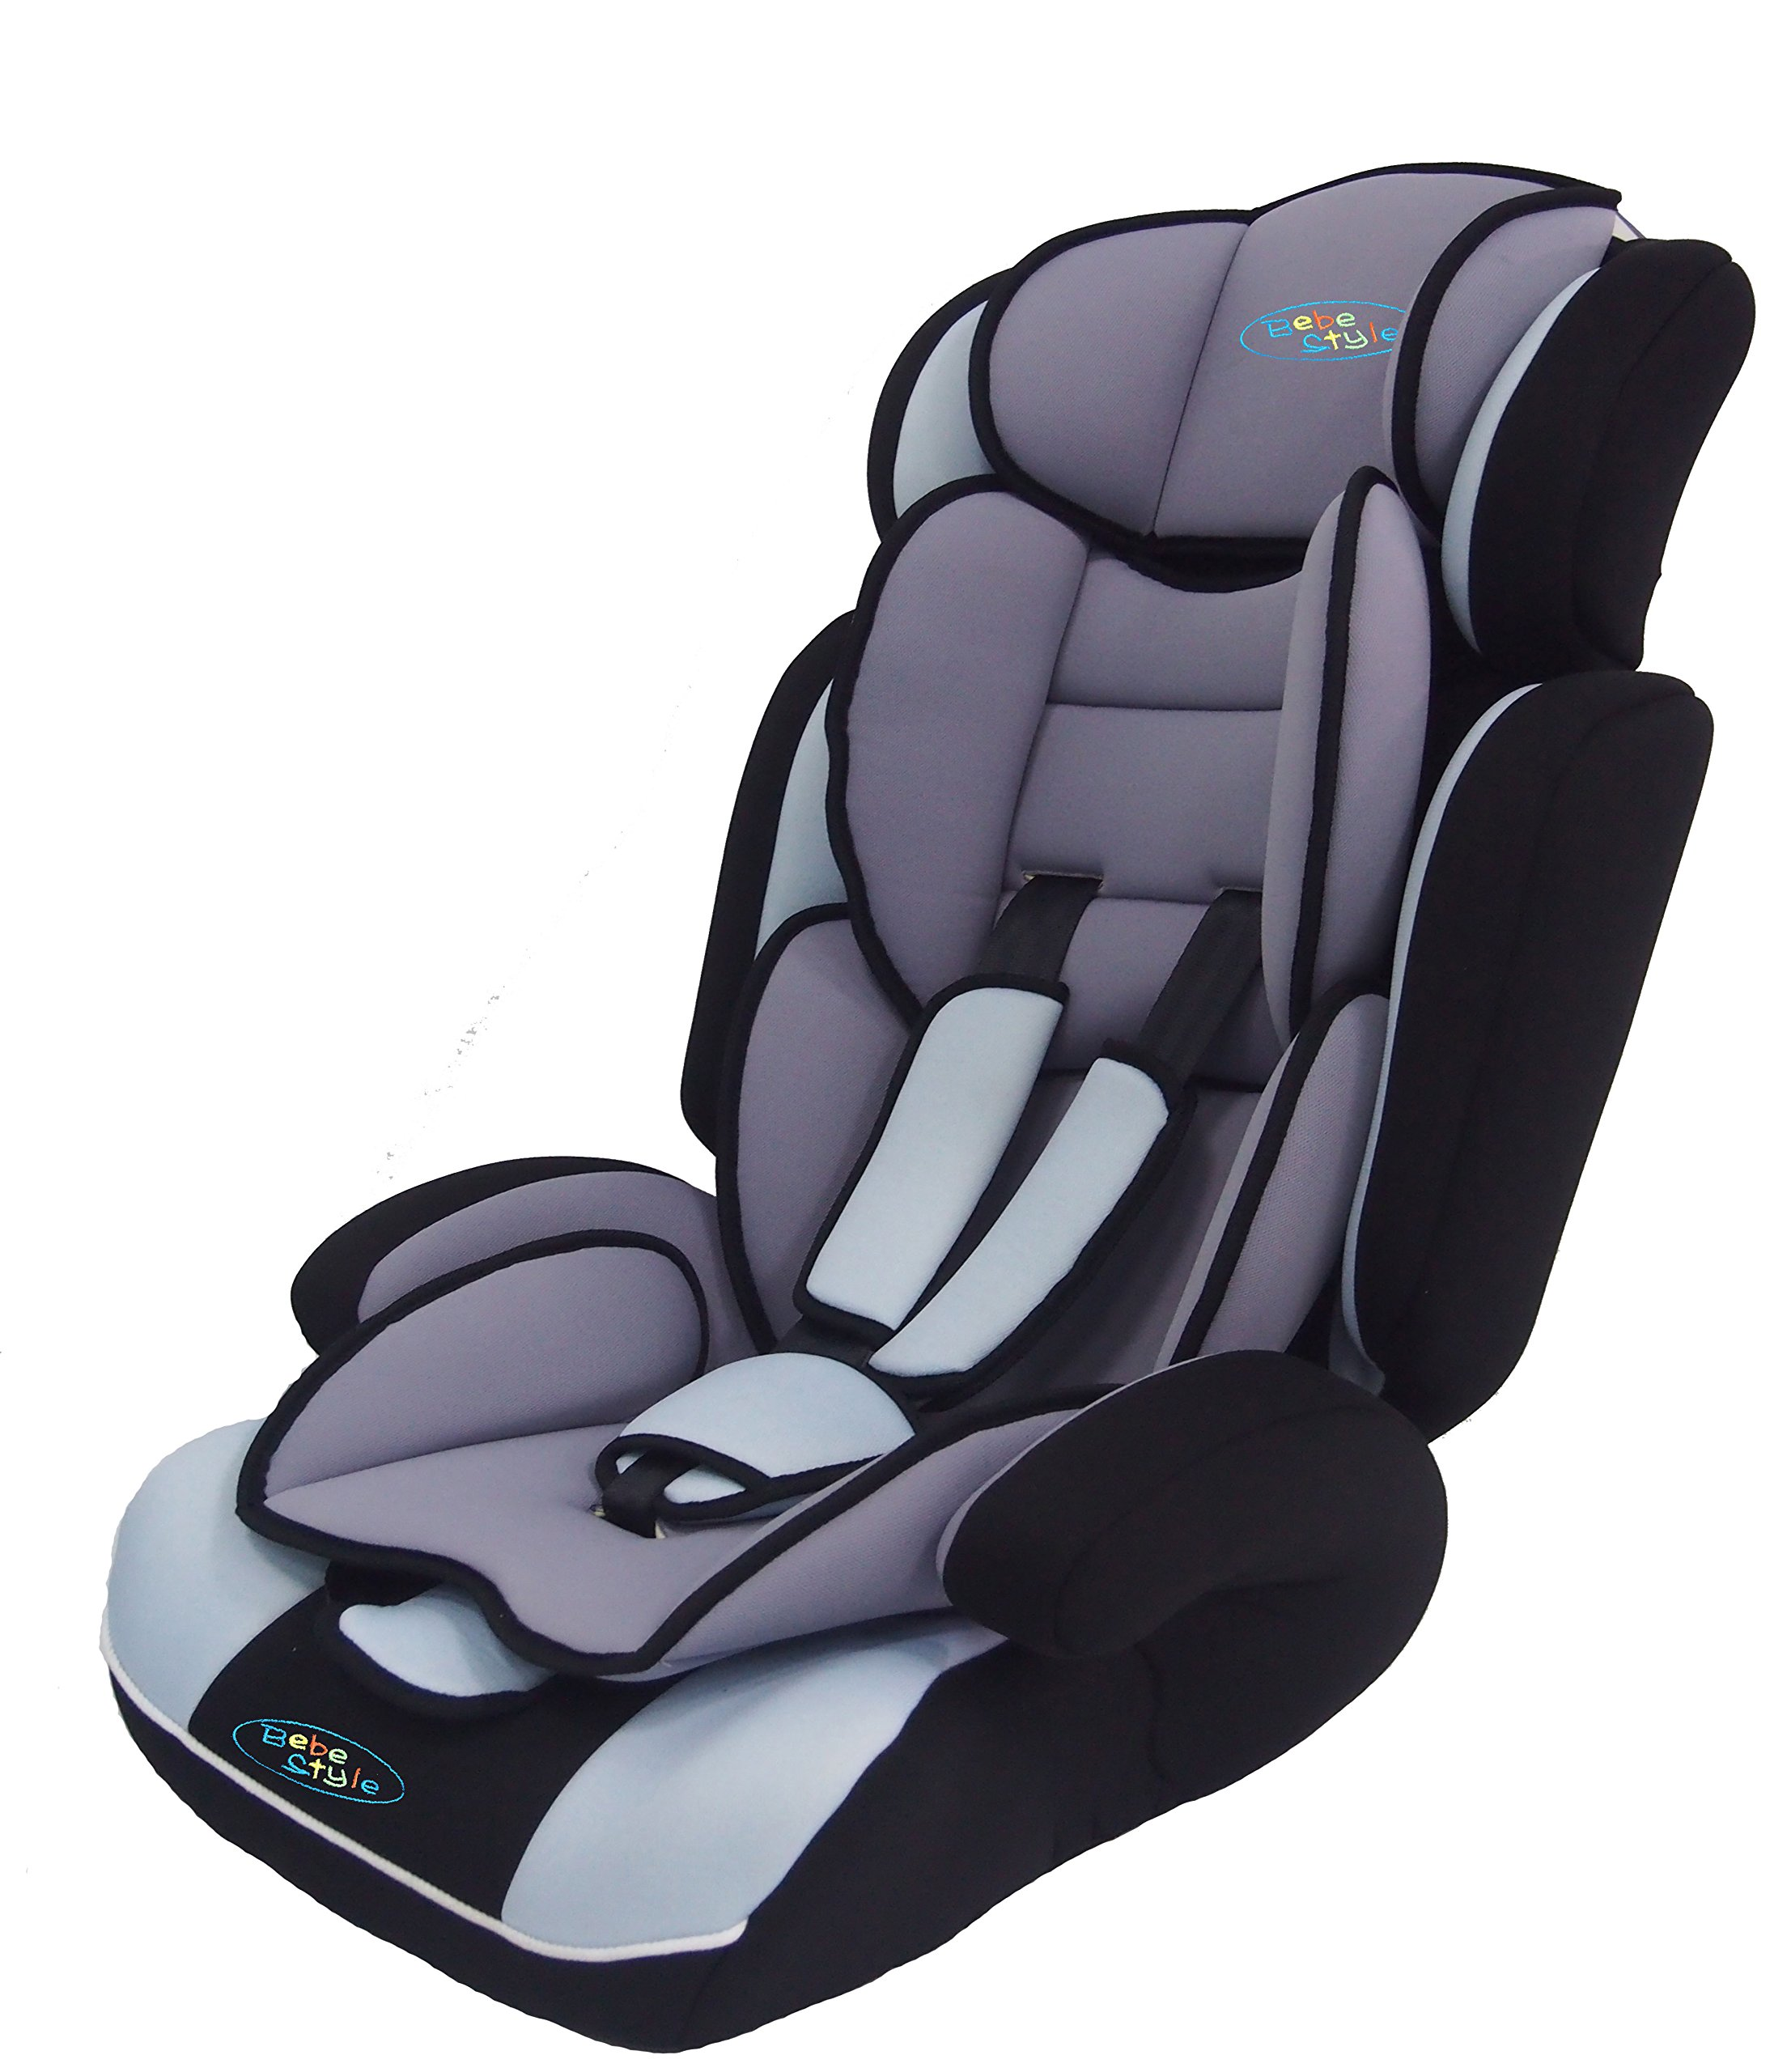 Bebe Style Convertiblle 1/2/3 Combination Car Seat and Booster Seat - Blue  From 9 months to 12 years old, one size fits all (9-36kg) Converts to booster seat.  Very Thick Padding Adjustable height of headrest and shoulder straps for the growing needs of the child 4